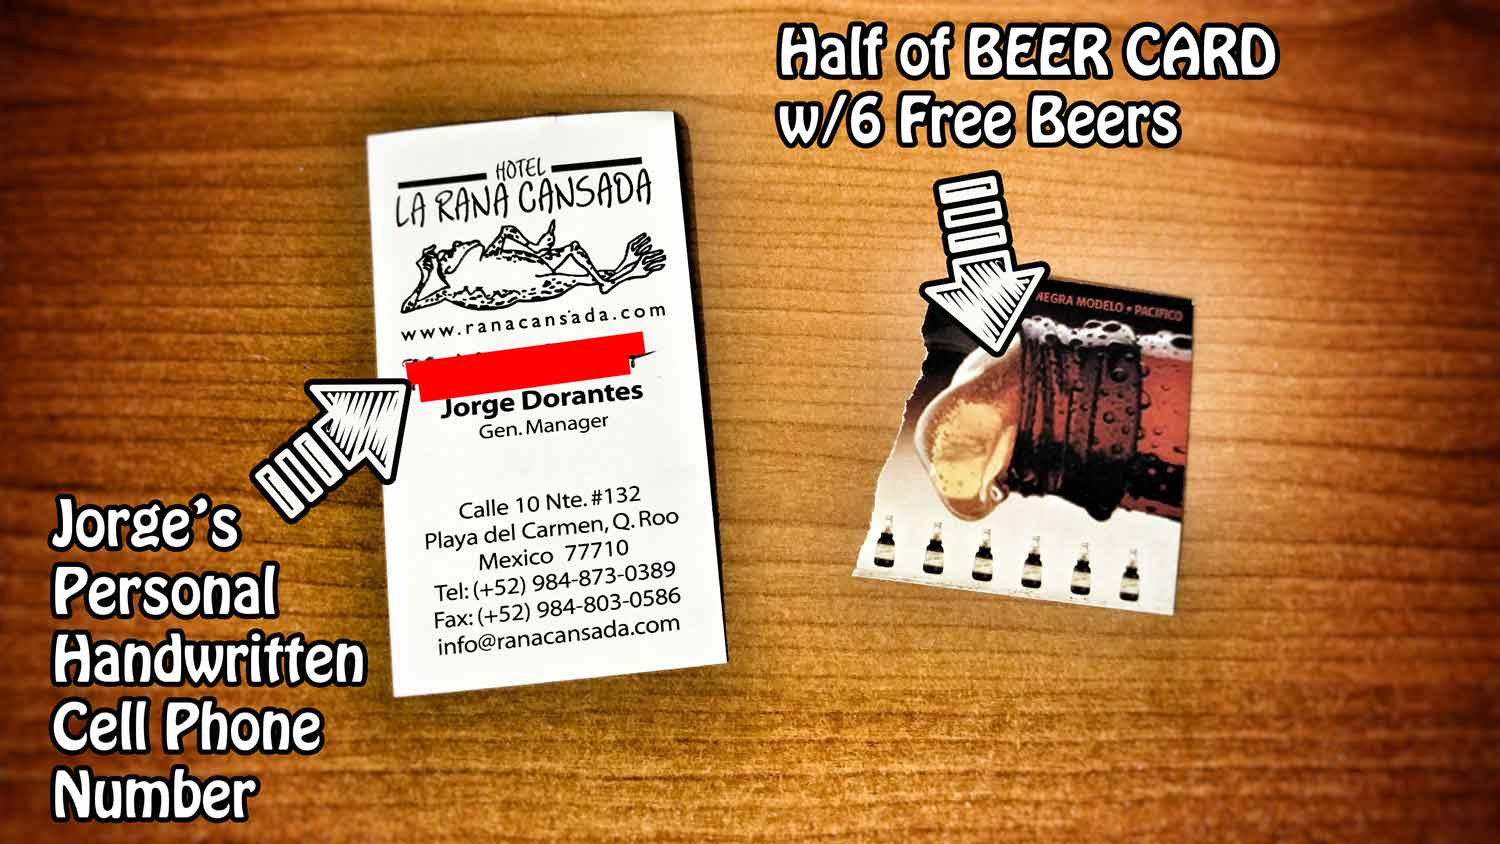 jorge-bar-ranita-business-card-and-half-of-beer-card